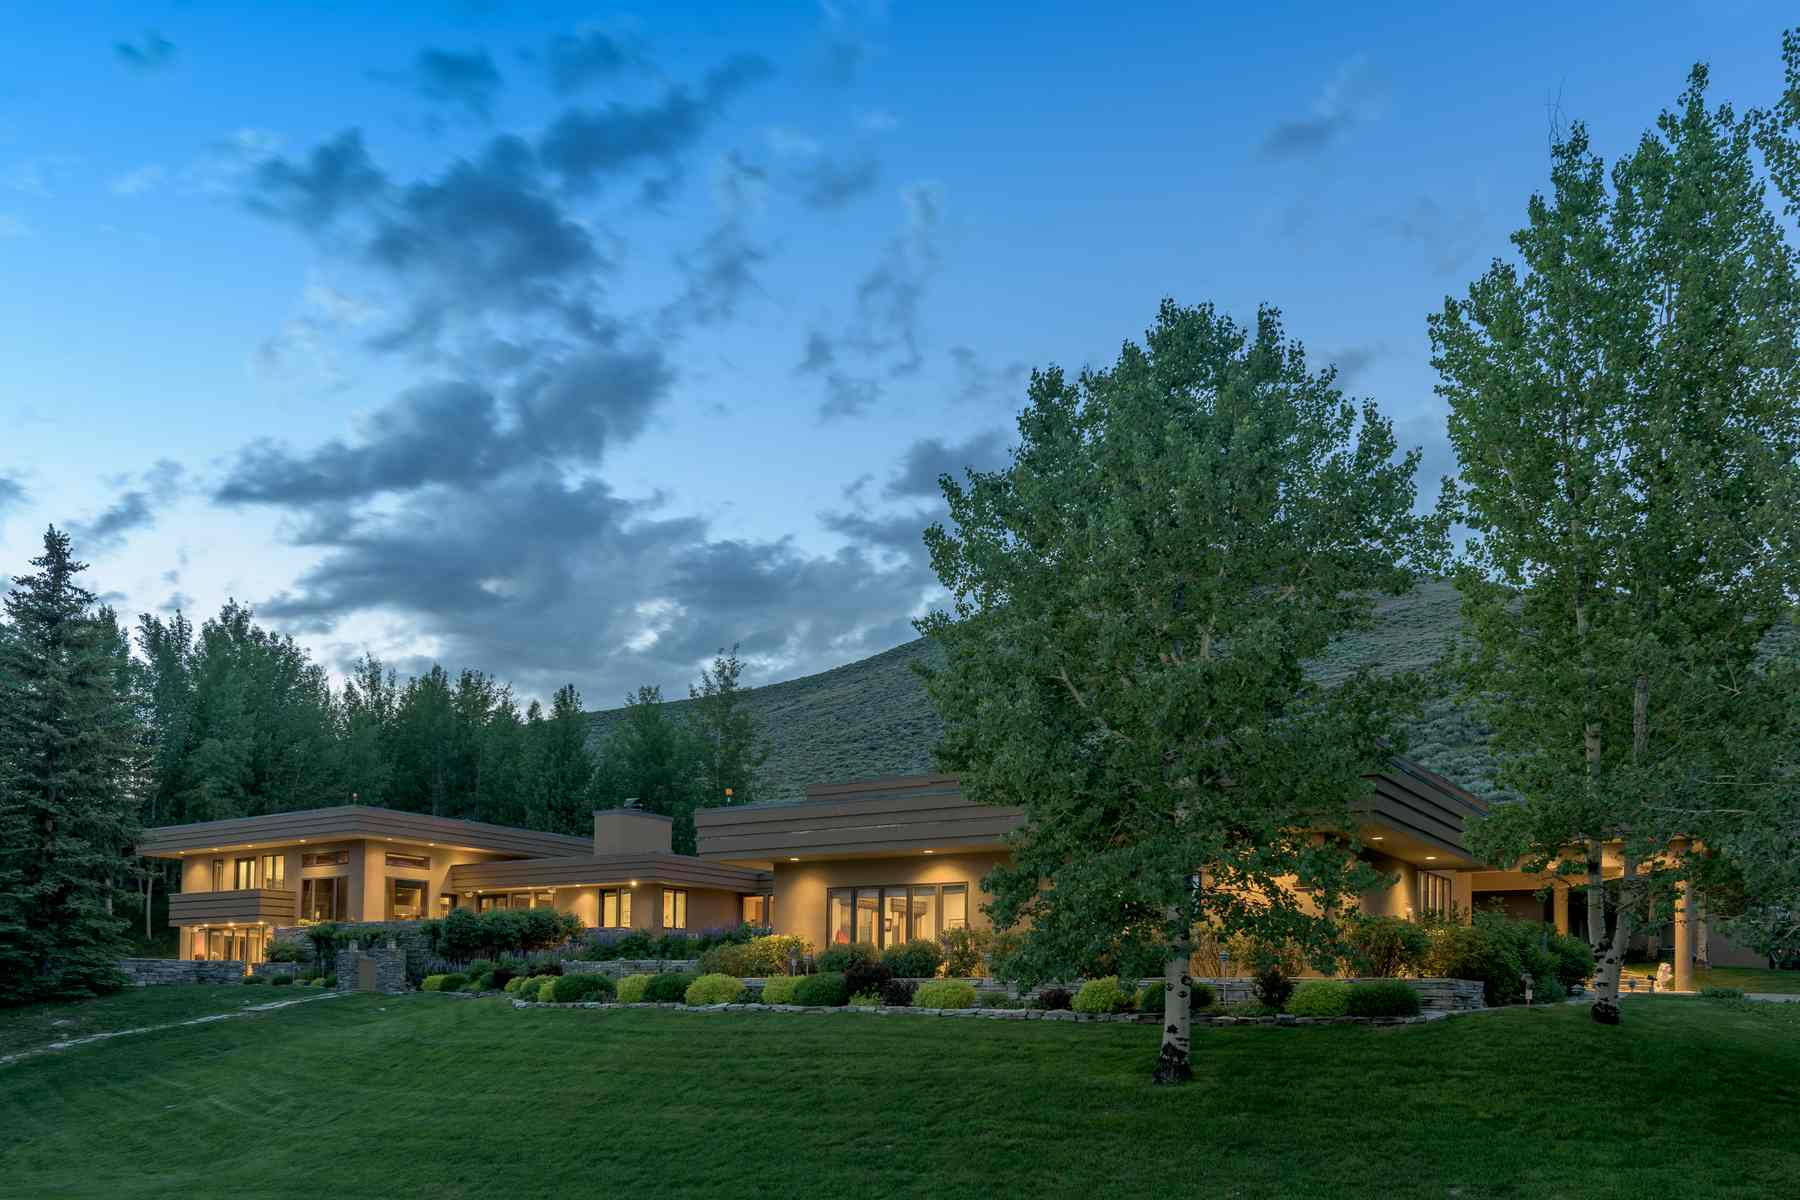 Single Family Home for Active at Spectacular Elevated Setting 455 N. Bigwood Drive Ketchum, Idaho 83340 United States